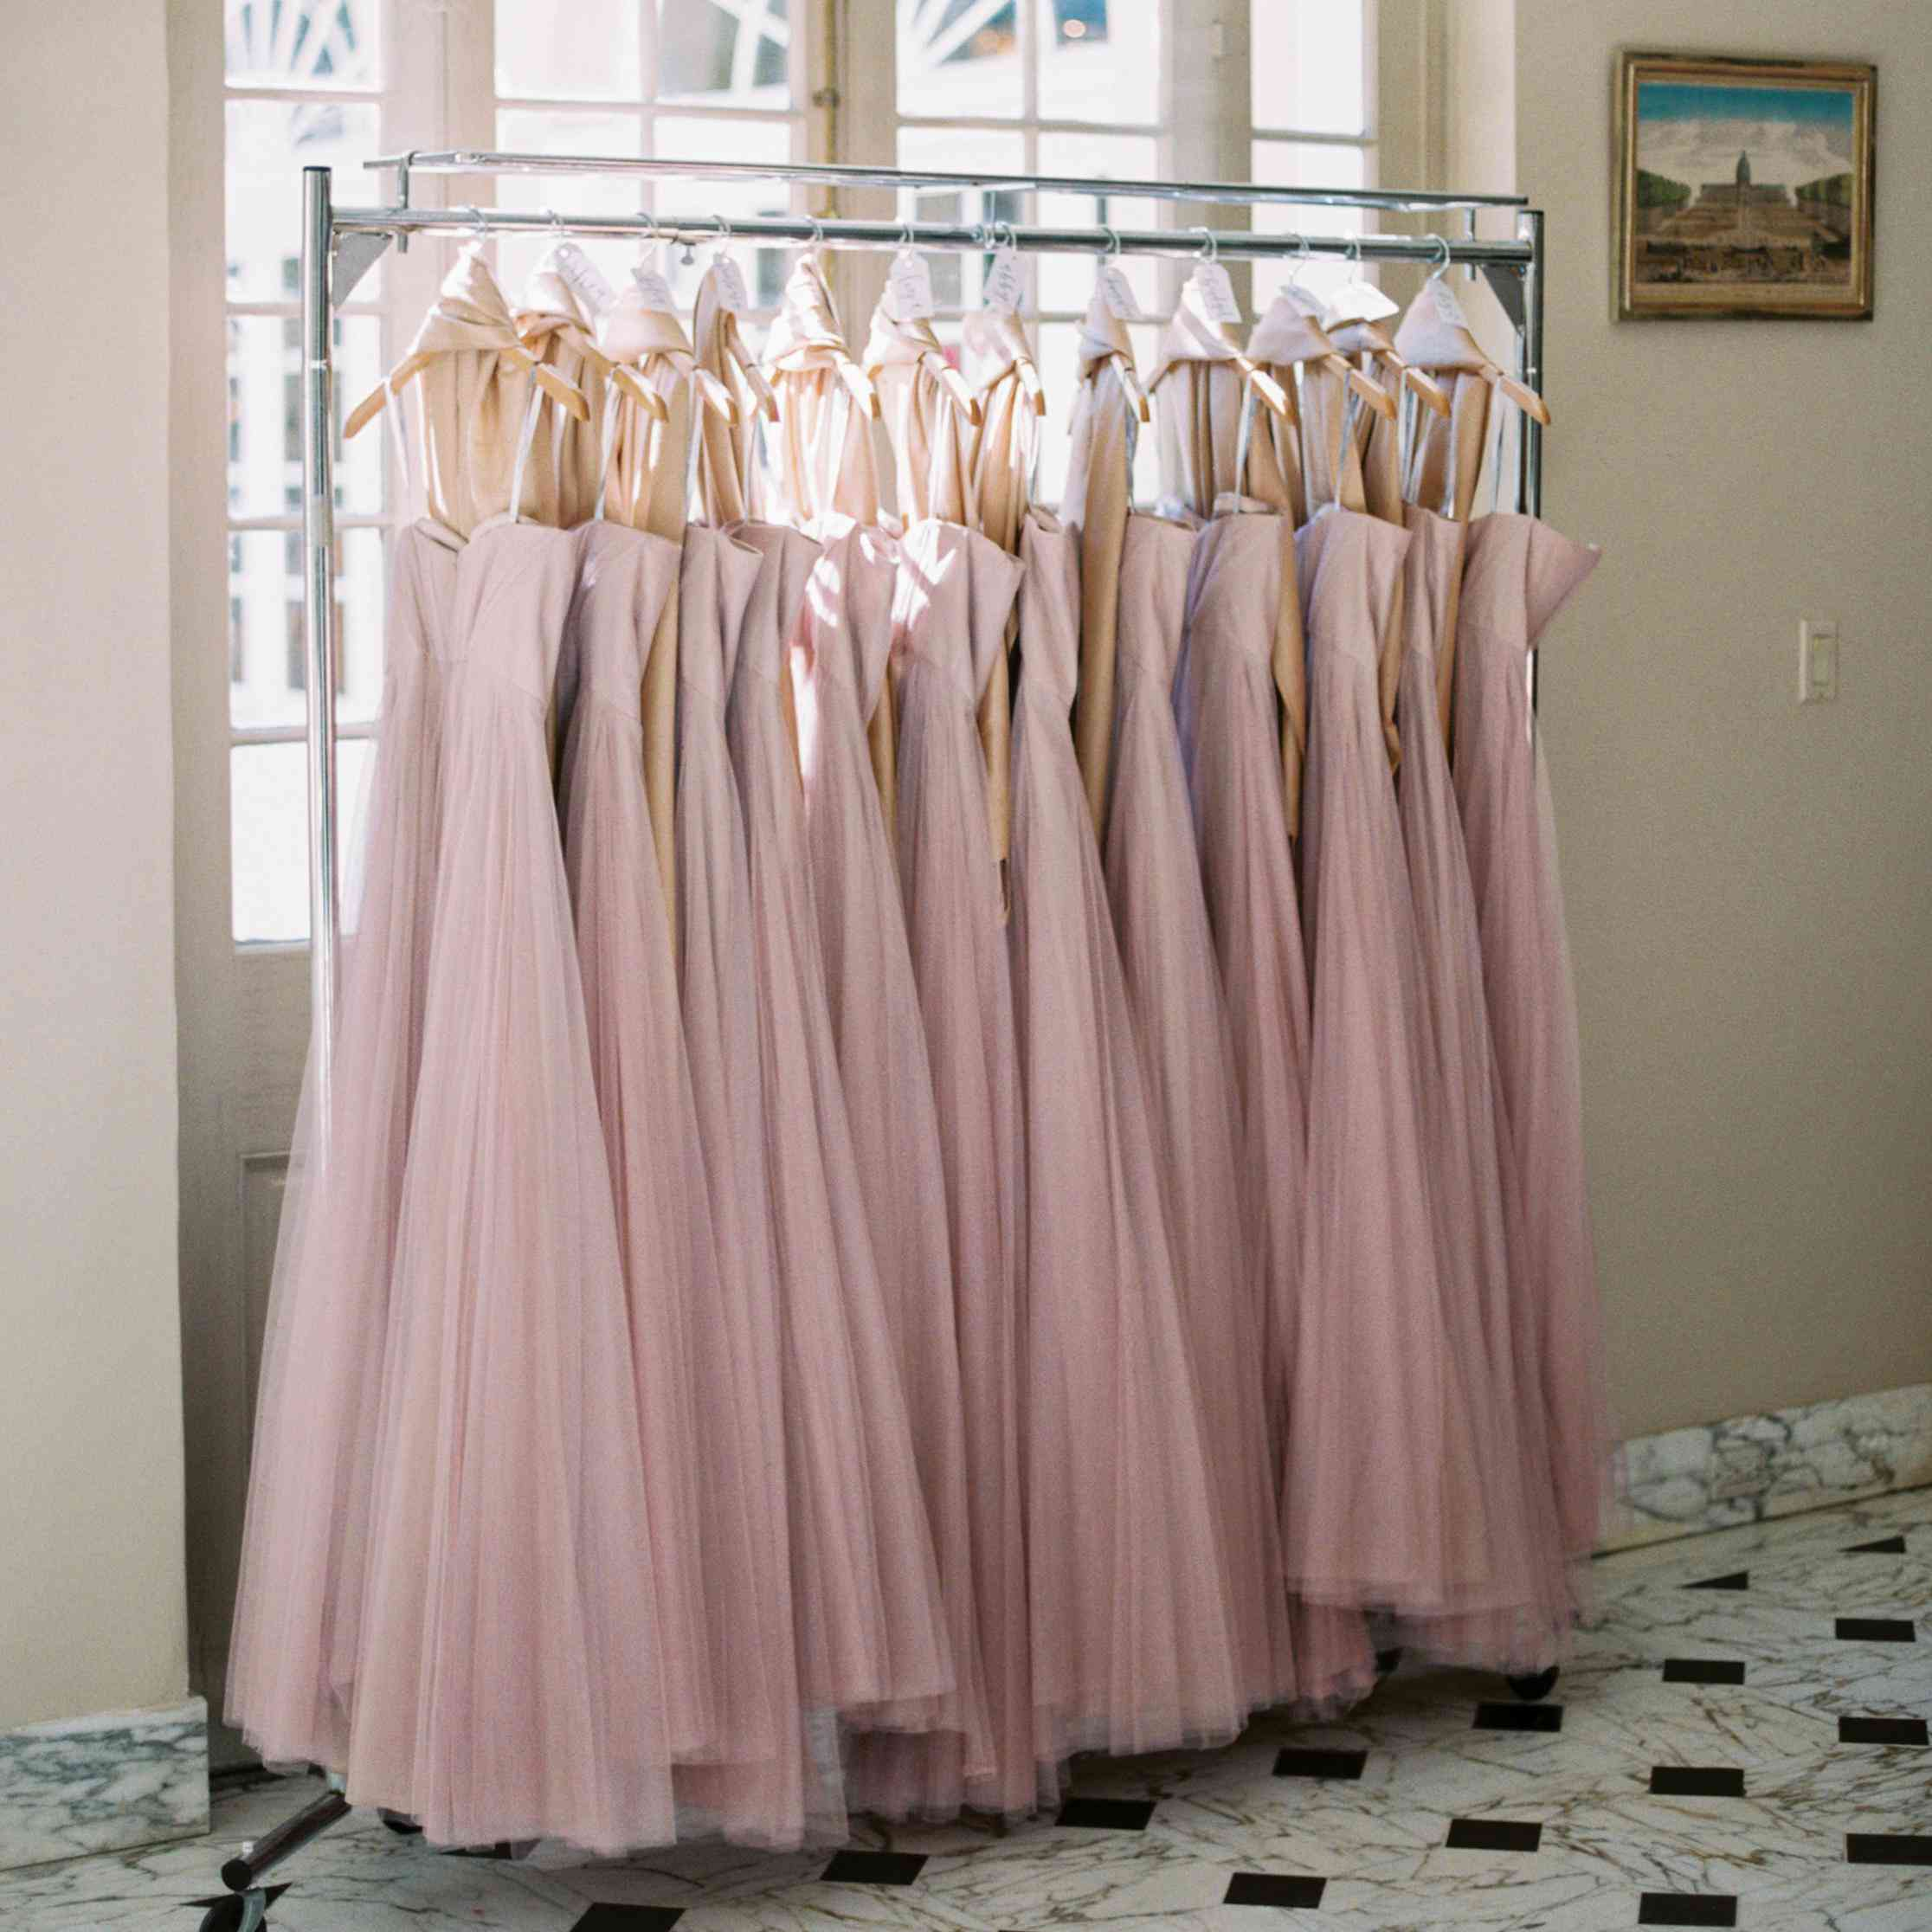 Average Bridesmaid Dress Cost: How Much Should They Spend?